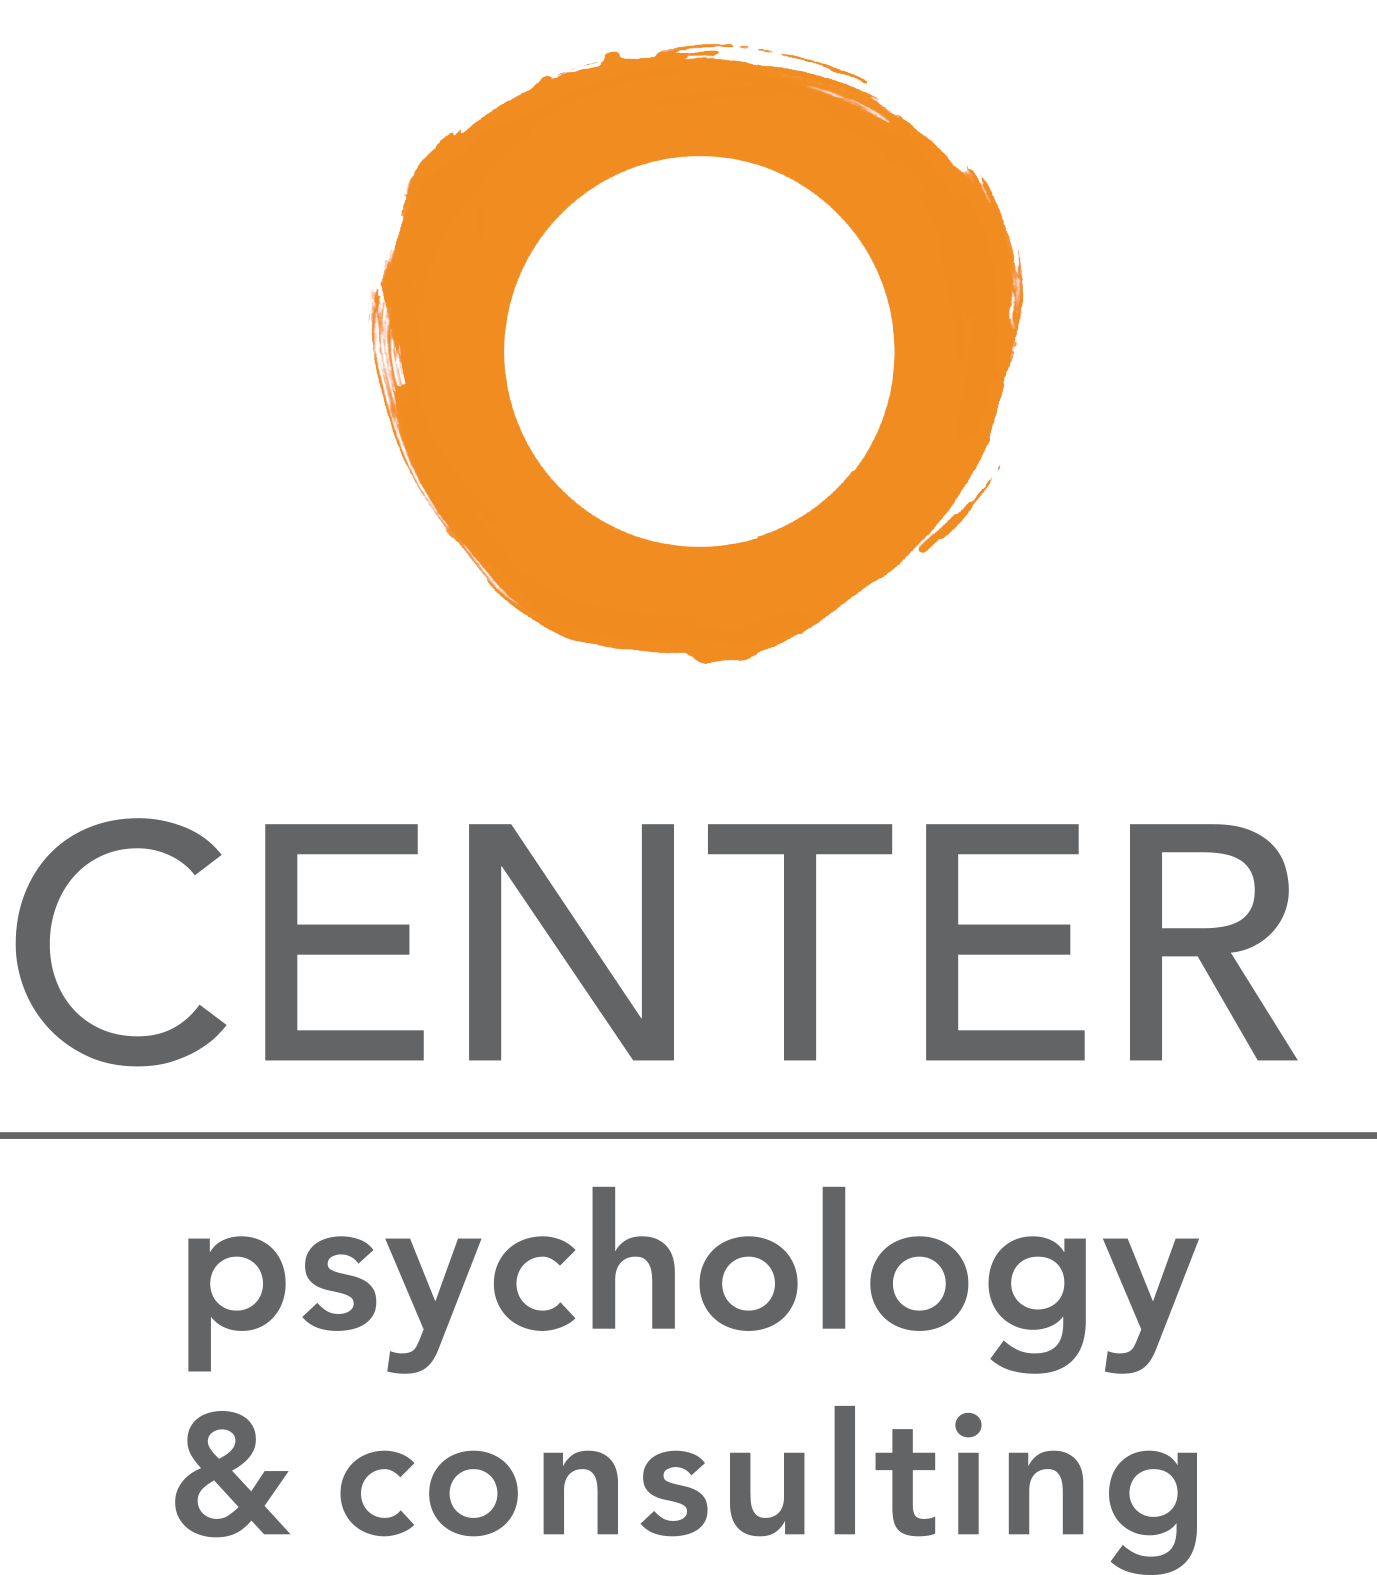 Center Psychology & Consulting